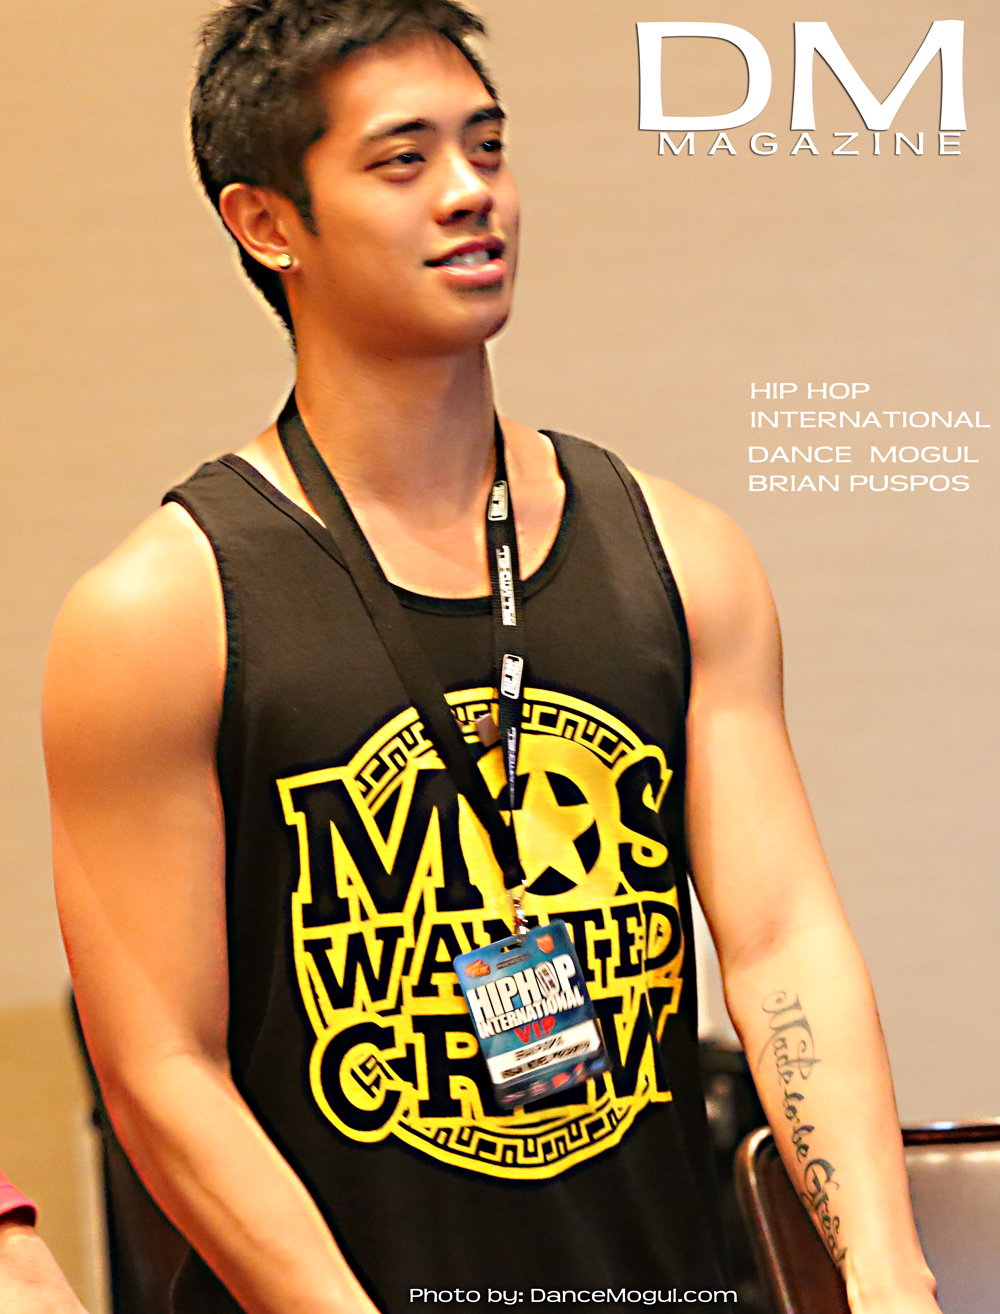 BRIAN PUSPOS  HIP HOP INTERNATIONAL  AUGUST 2012